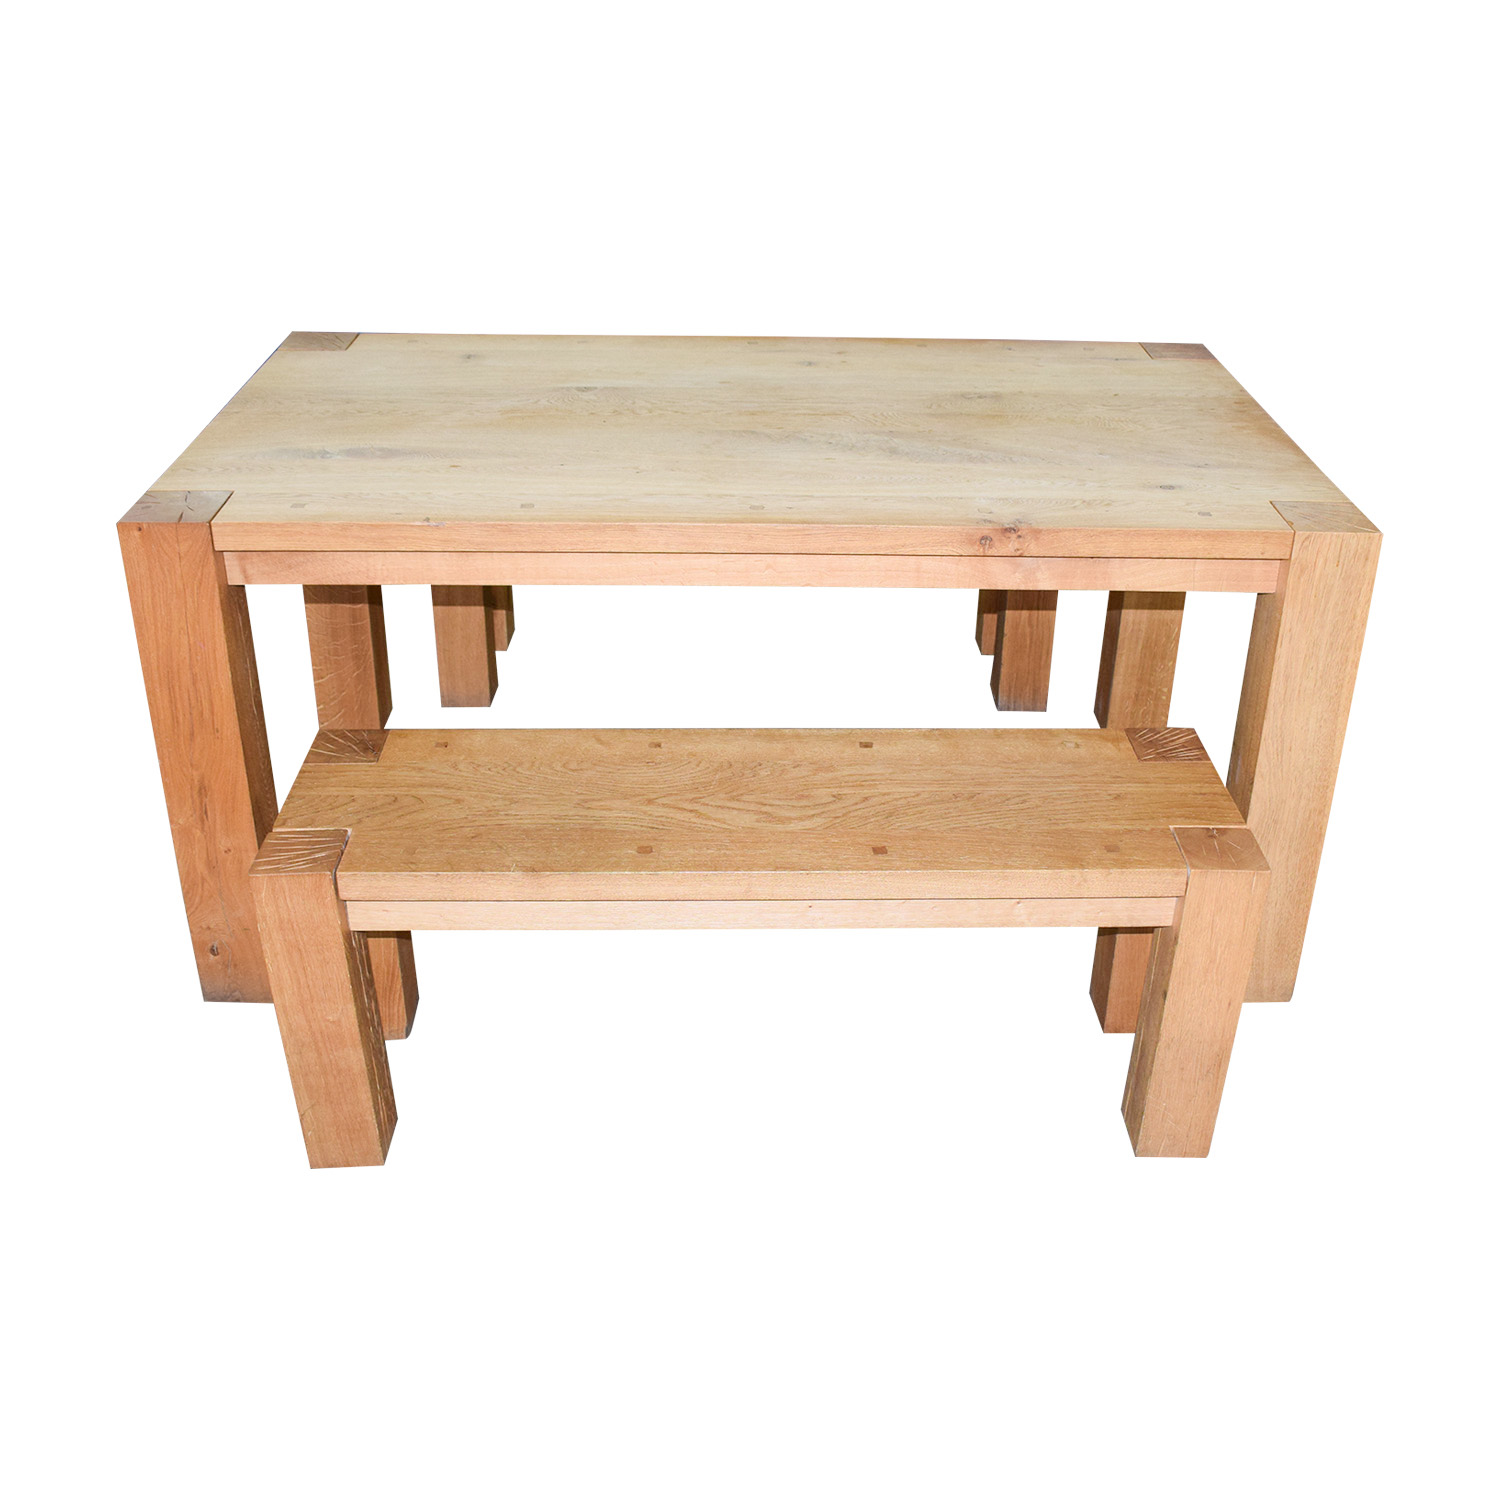 shop Crate & Barrel Big Sur Natural Dining Table with Benches Crate & Barrel Tables